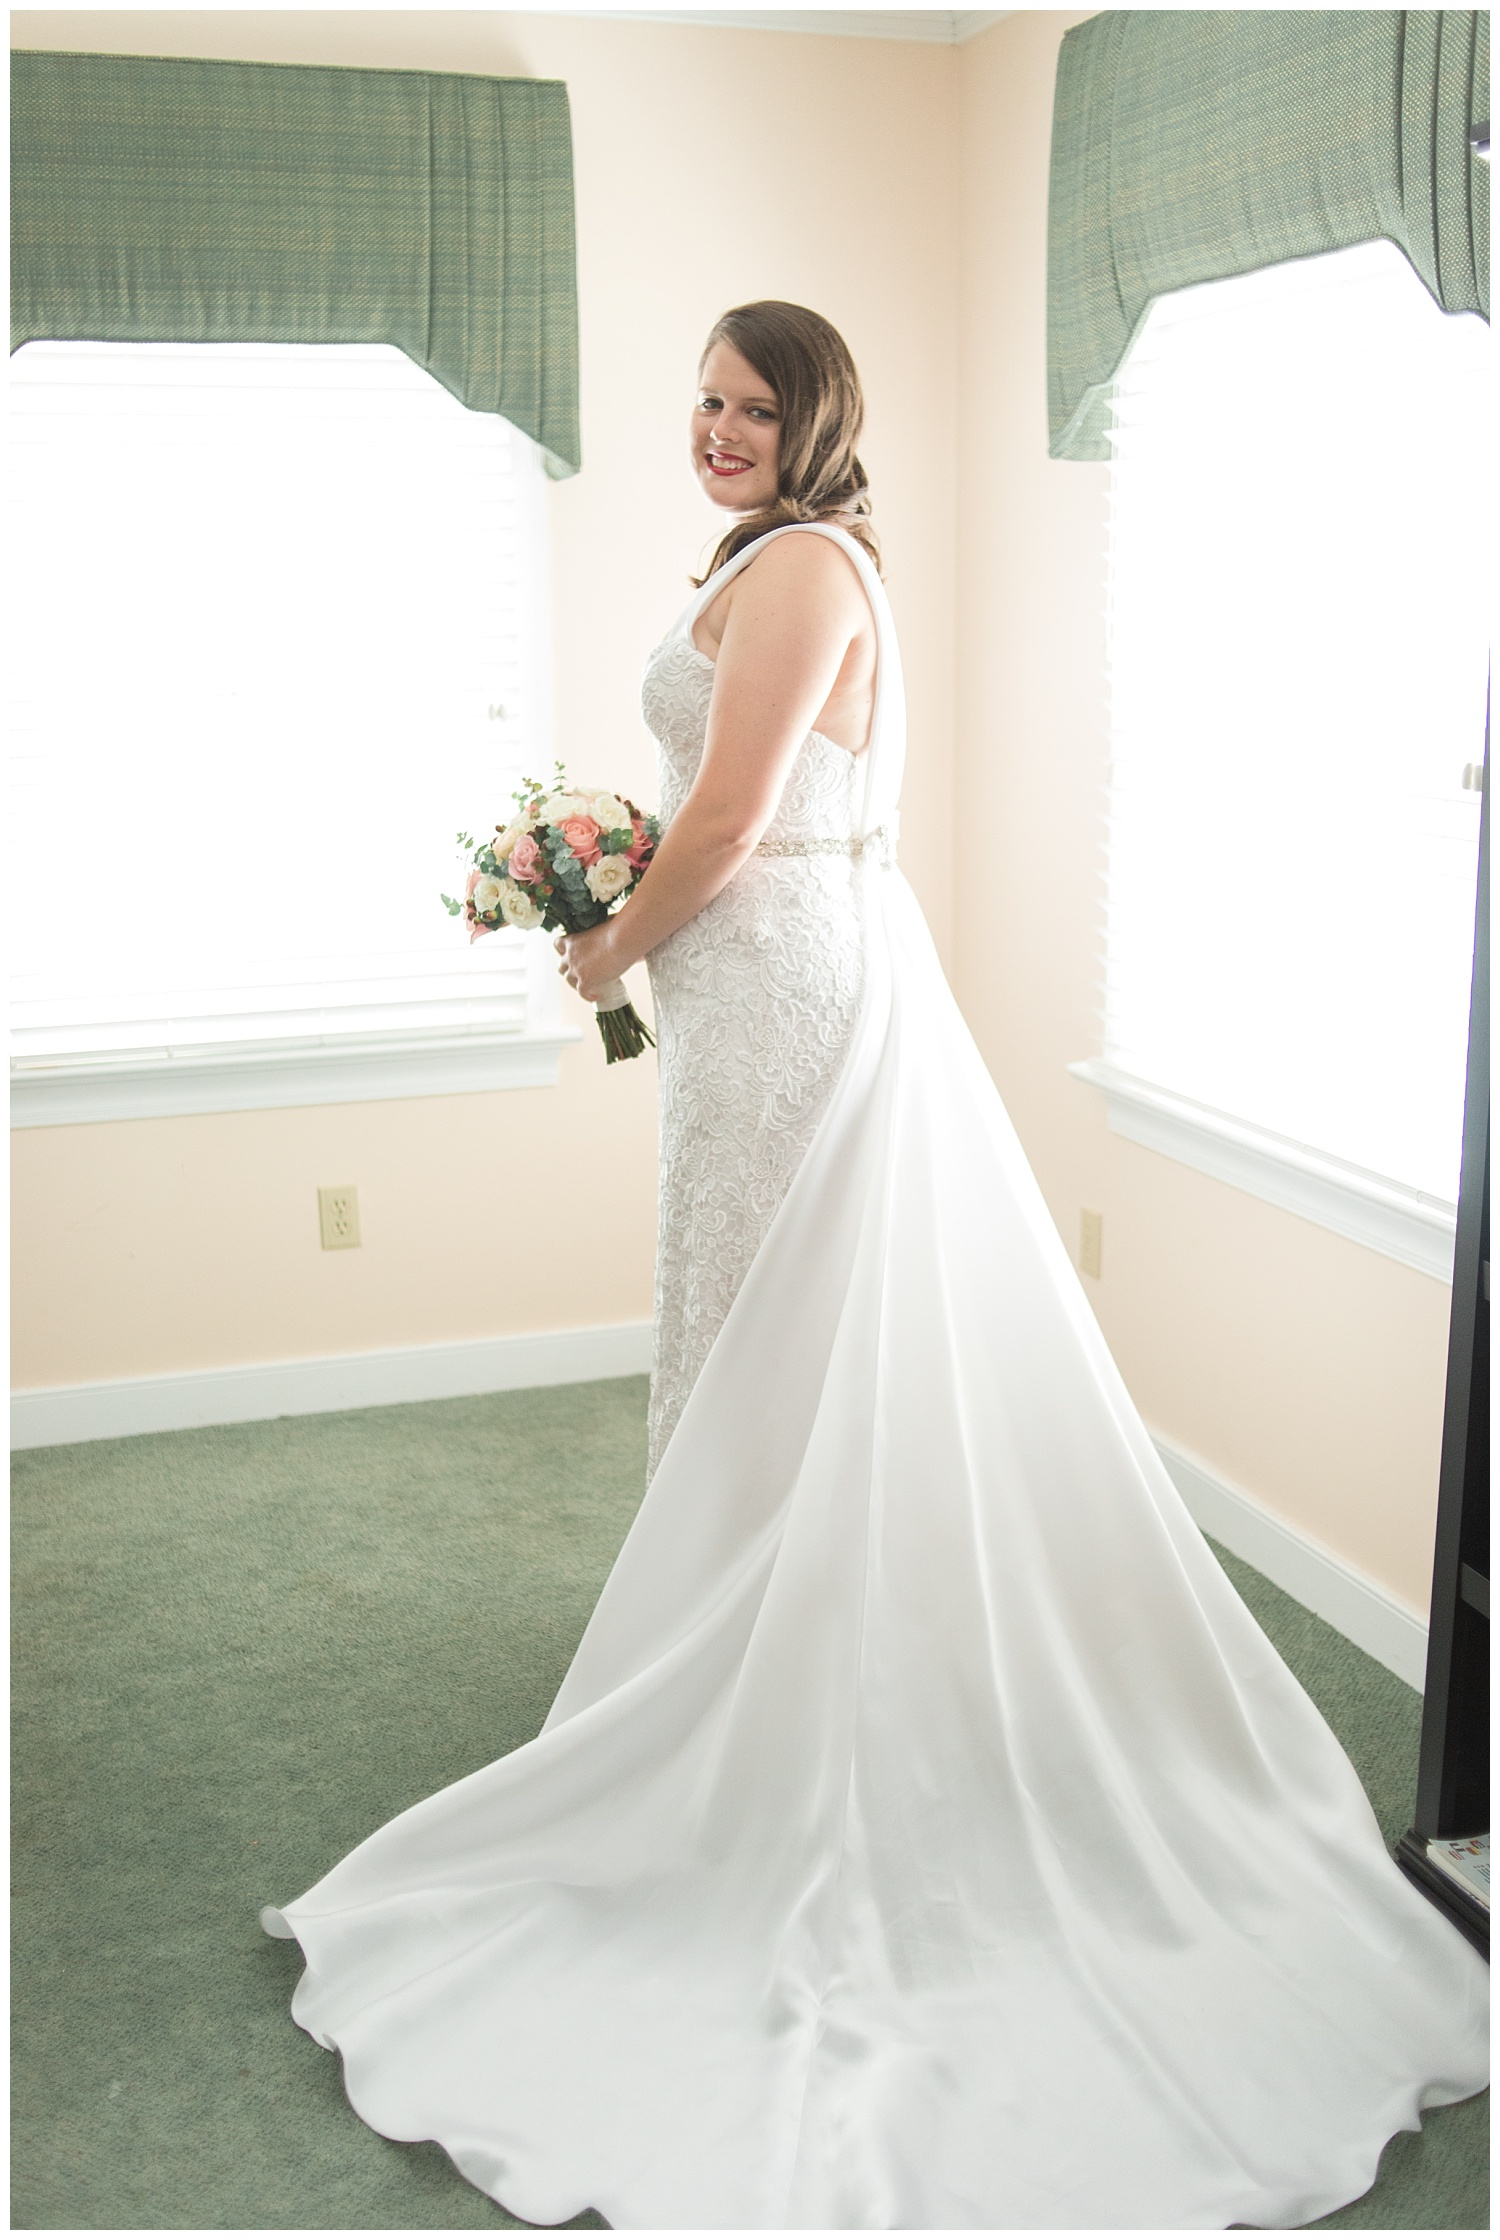 MJMP Richmond Wedding Photographer Indian Creek Yacht Country Club Wedding Photo_0017.jpg